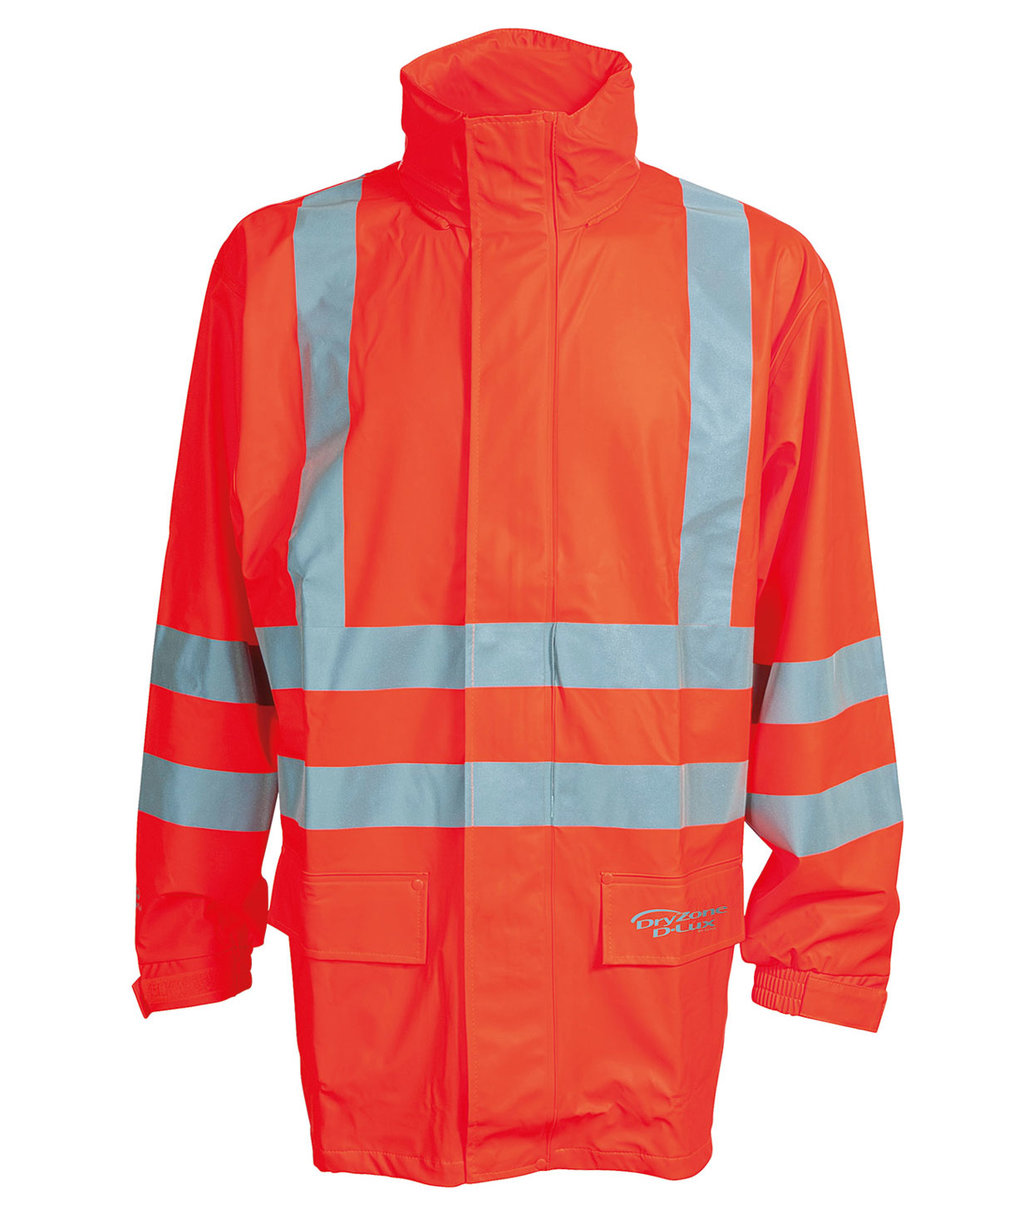 Elka Dry Zone Visible D-Lux jacka, Varsel Orange